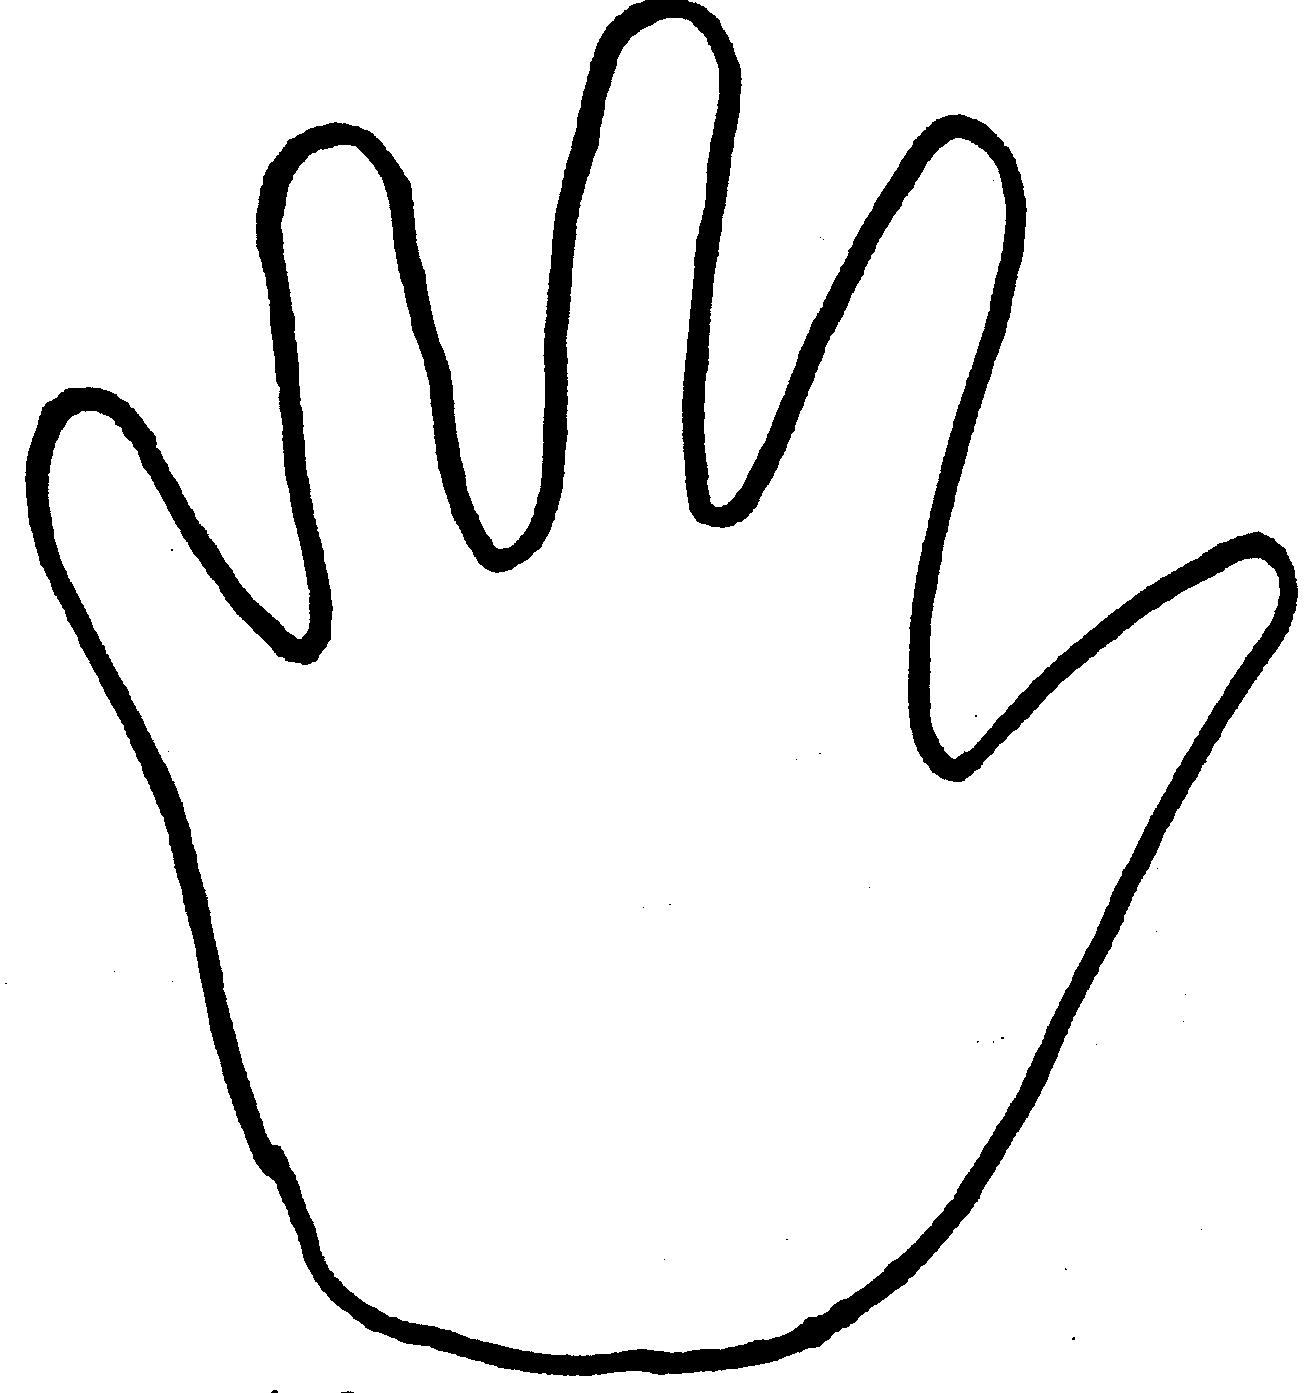 photograph relating to Handprint Printable identify Handprint Template Totally free down load ideal Handprint Template